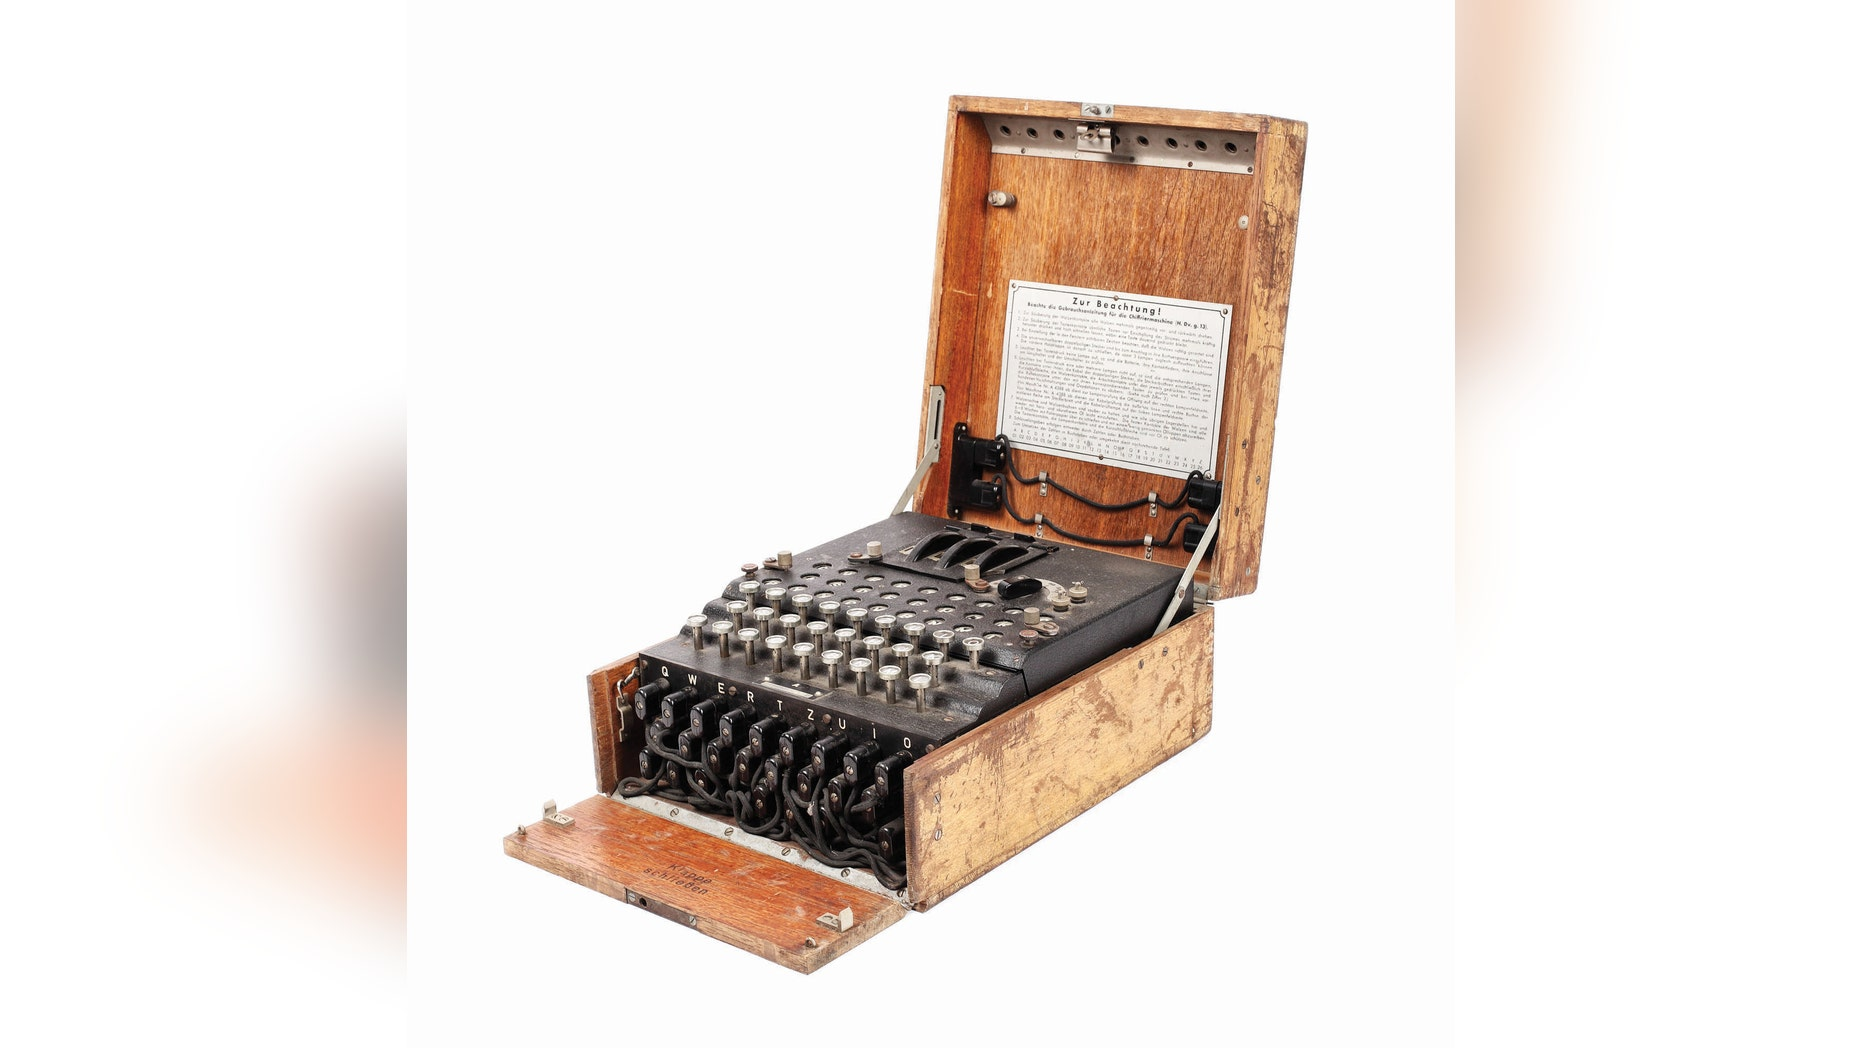 Nazi Enigma cipher machine. (Credit: Artmark press release.)